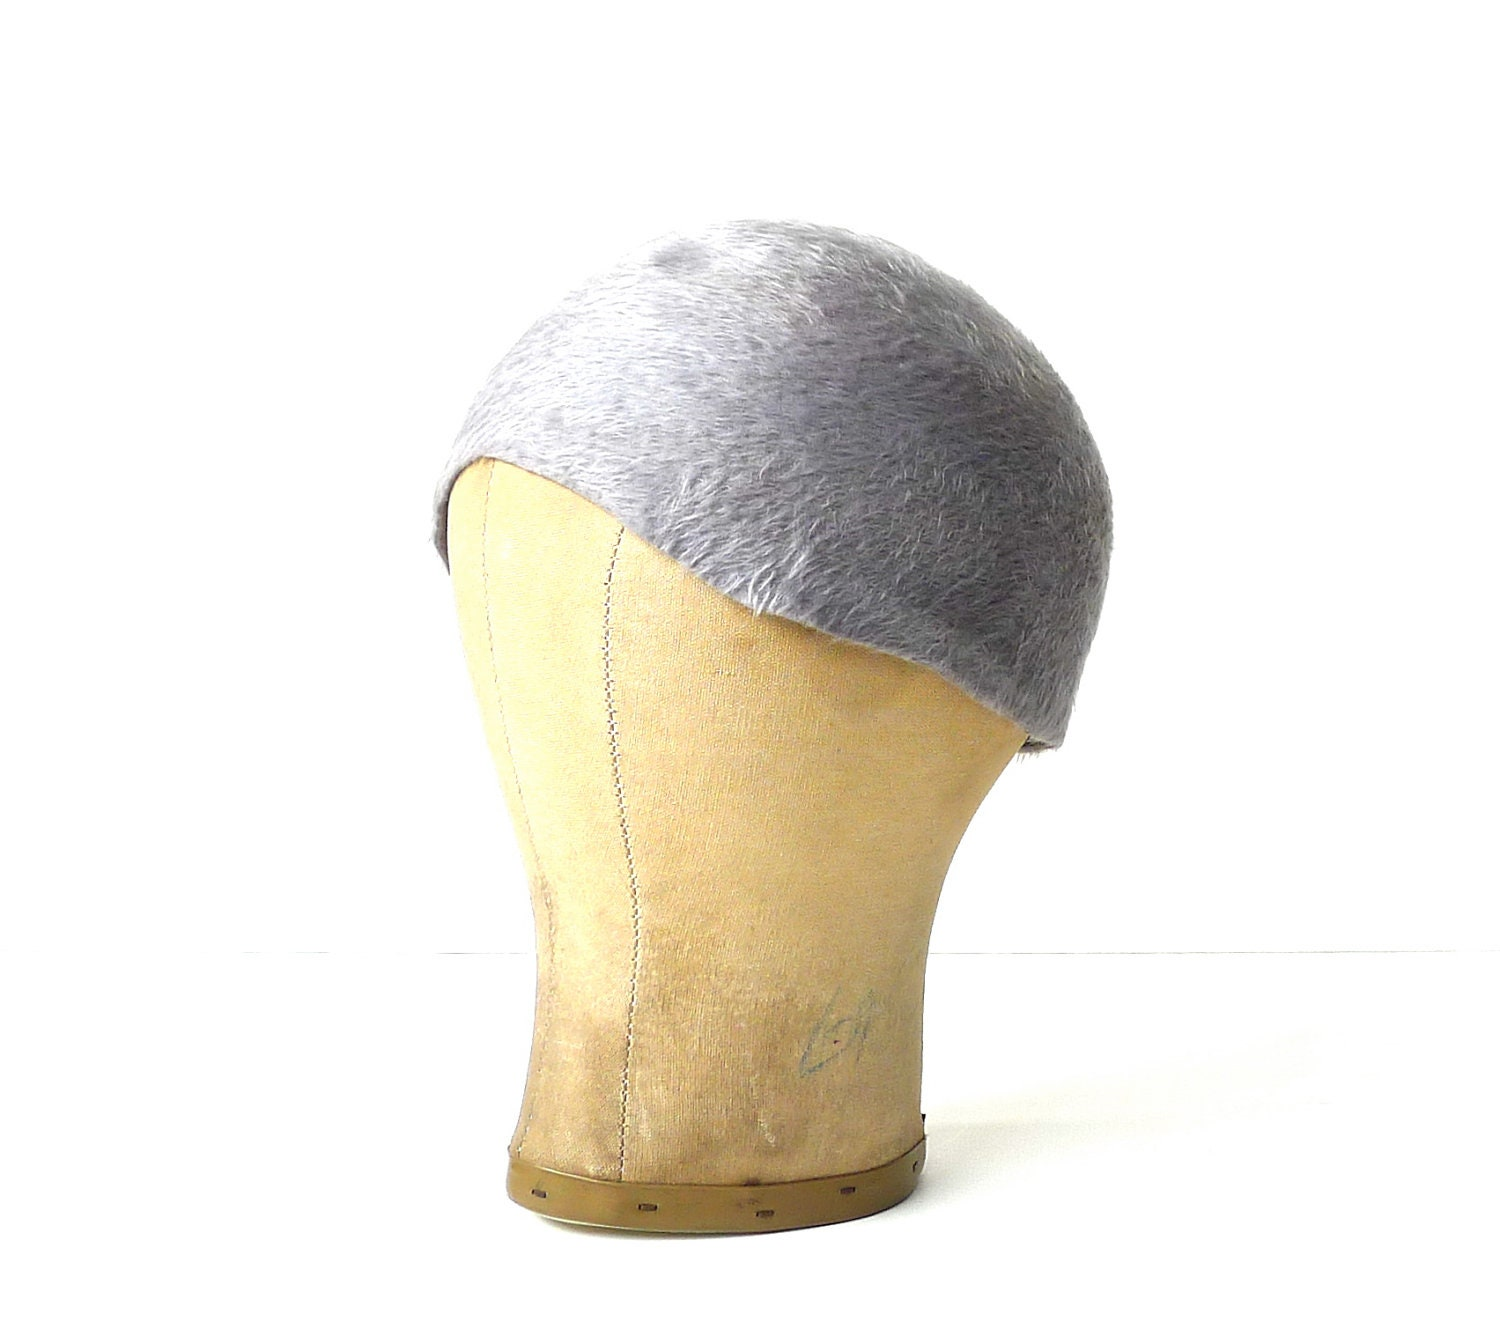 Vintage 1930s Pale Grey Hat - marybethhale